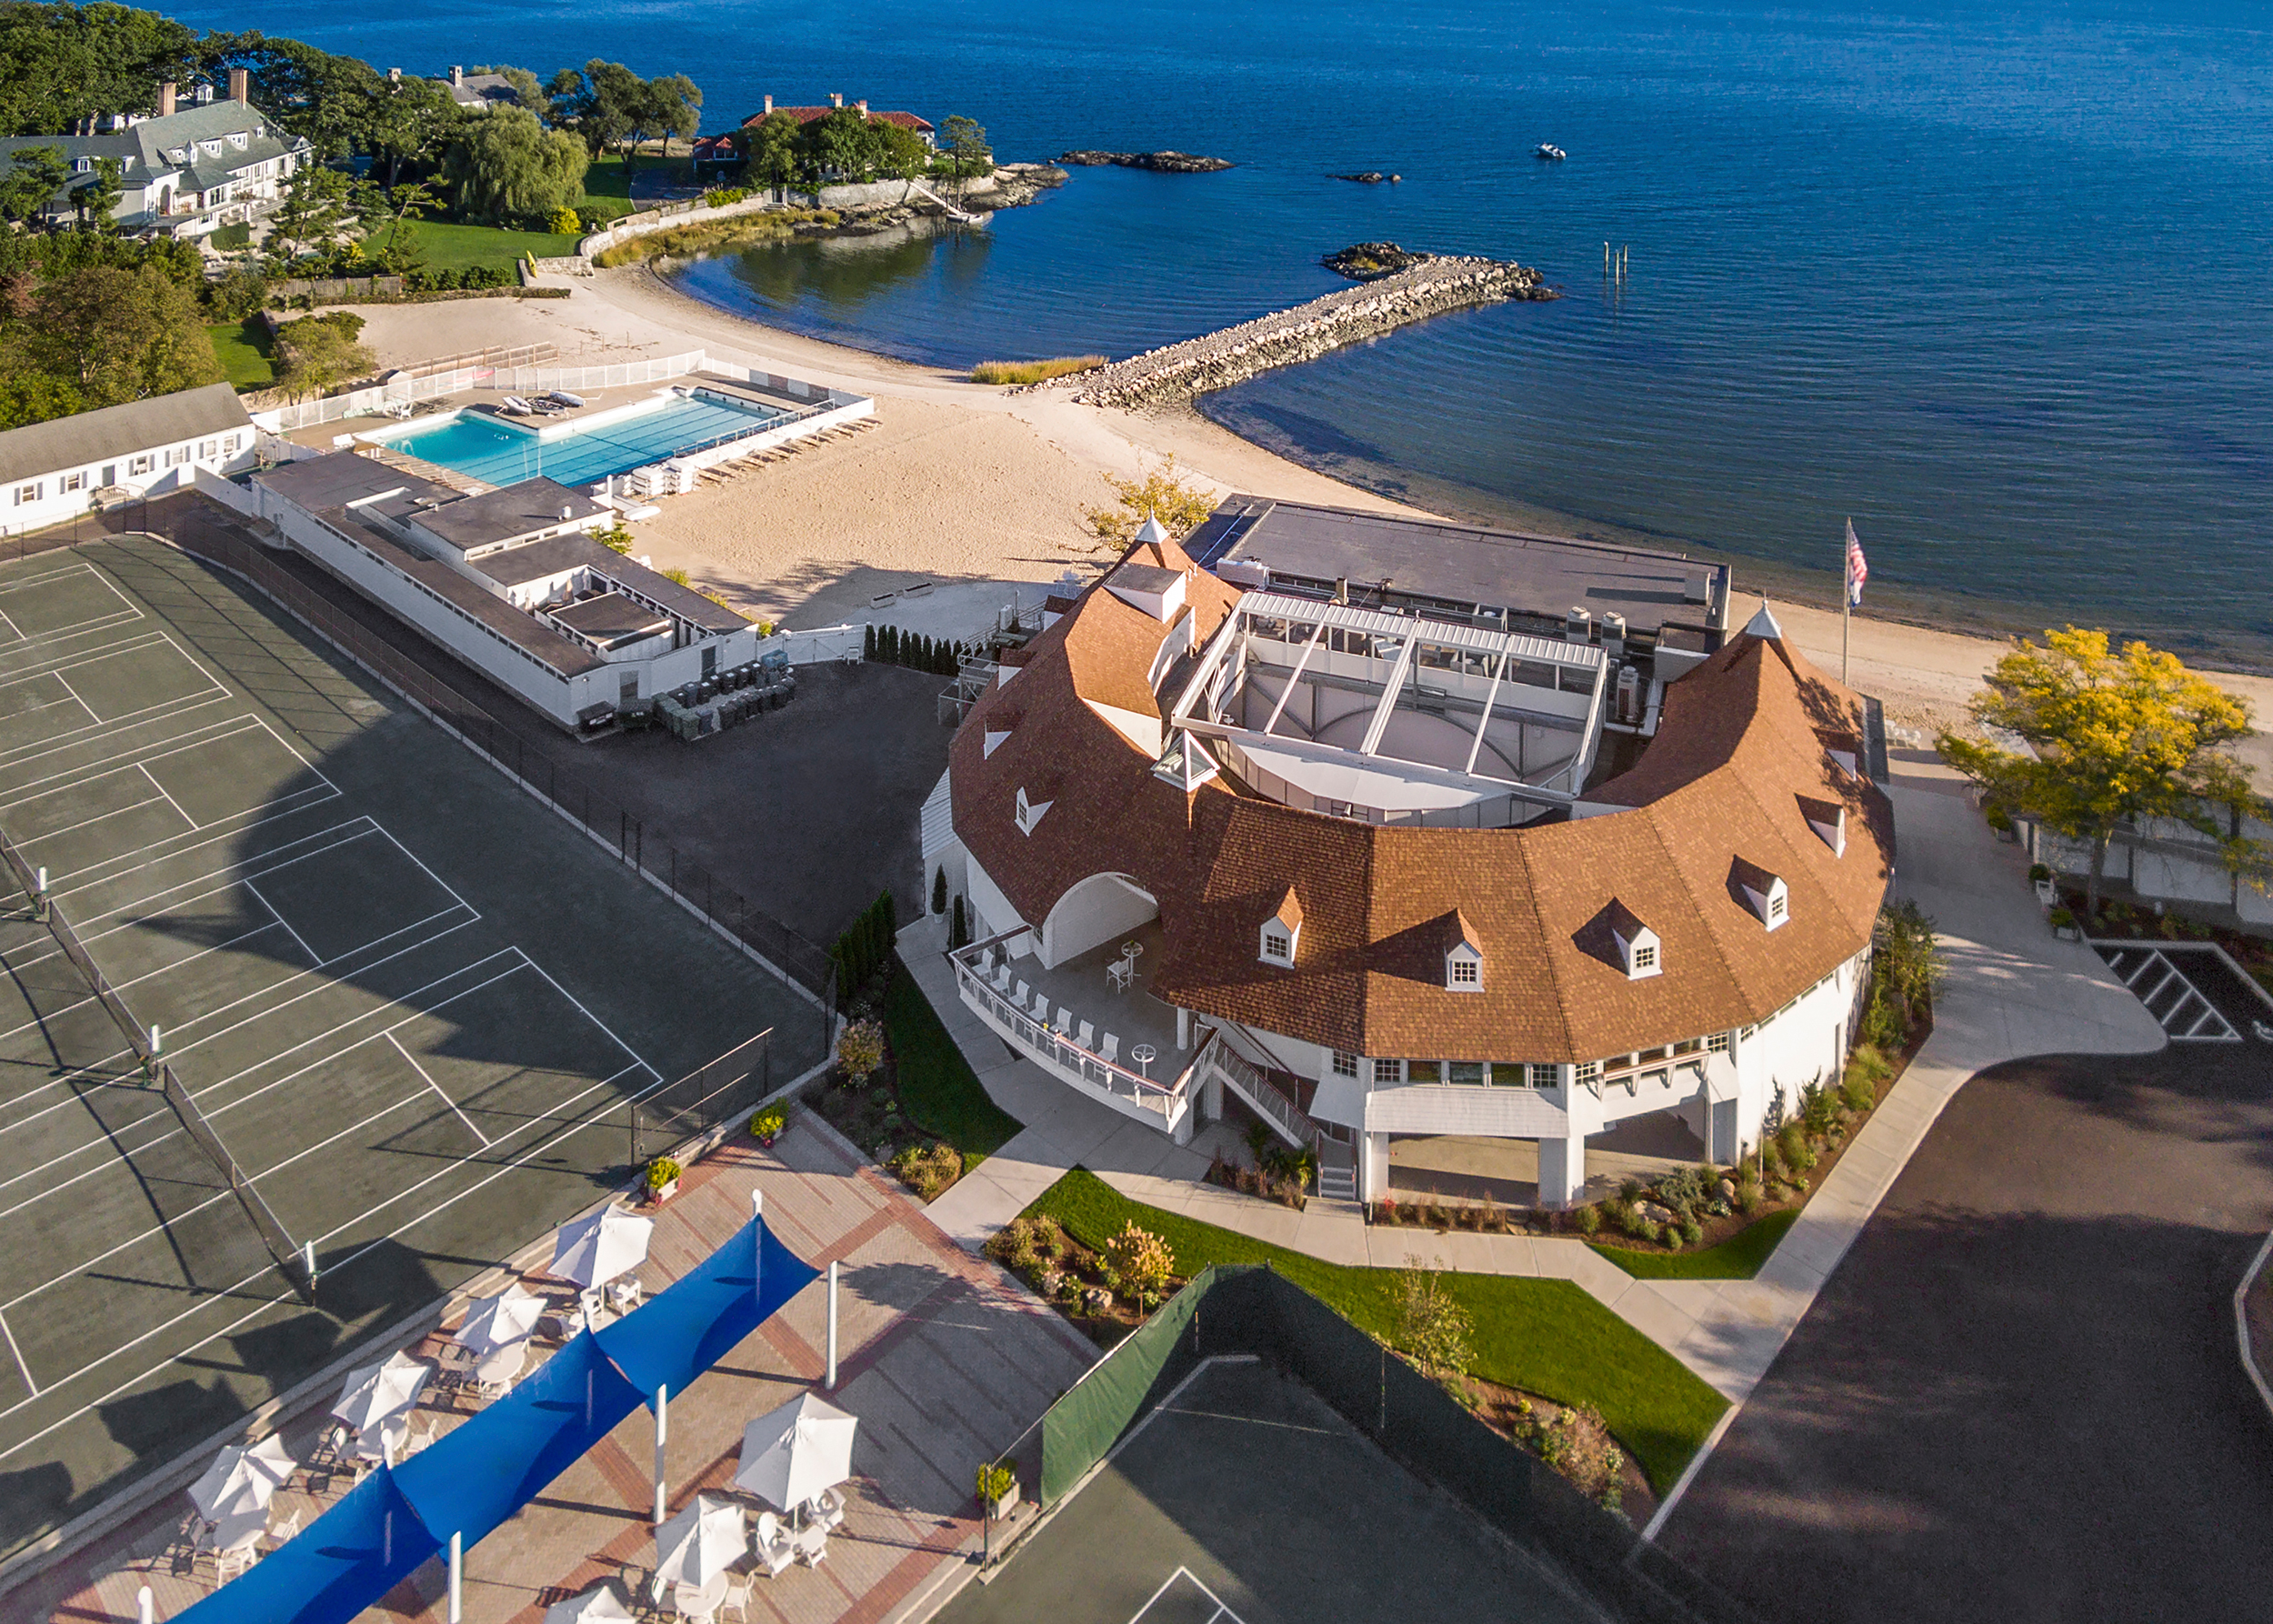 Tokeneke Beach Club  Darien CT architectural design by PBS Architects and Rogers McCagg Architects.